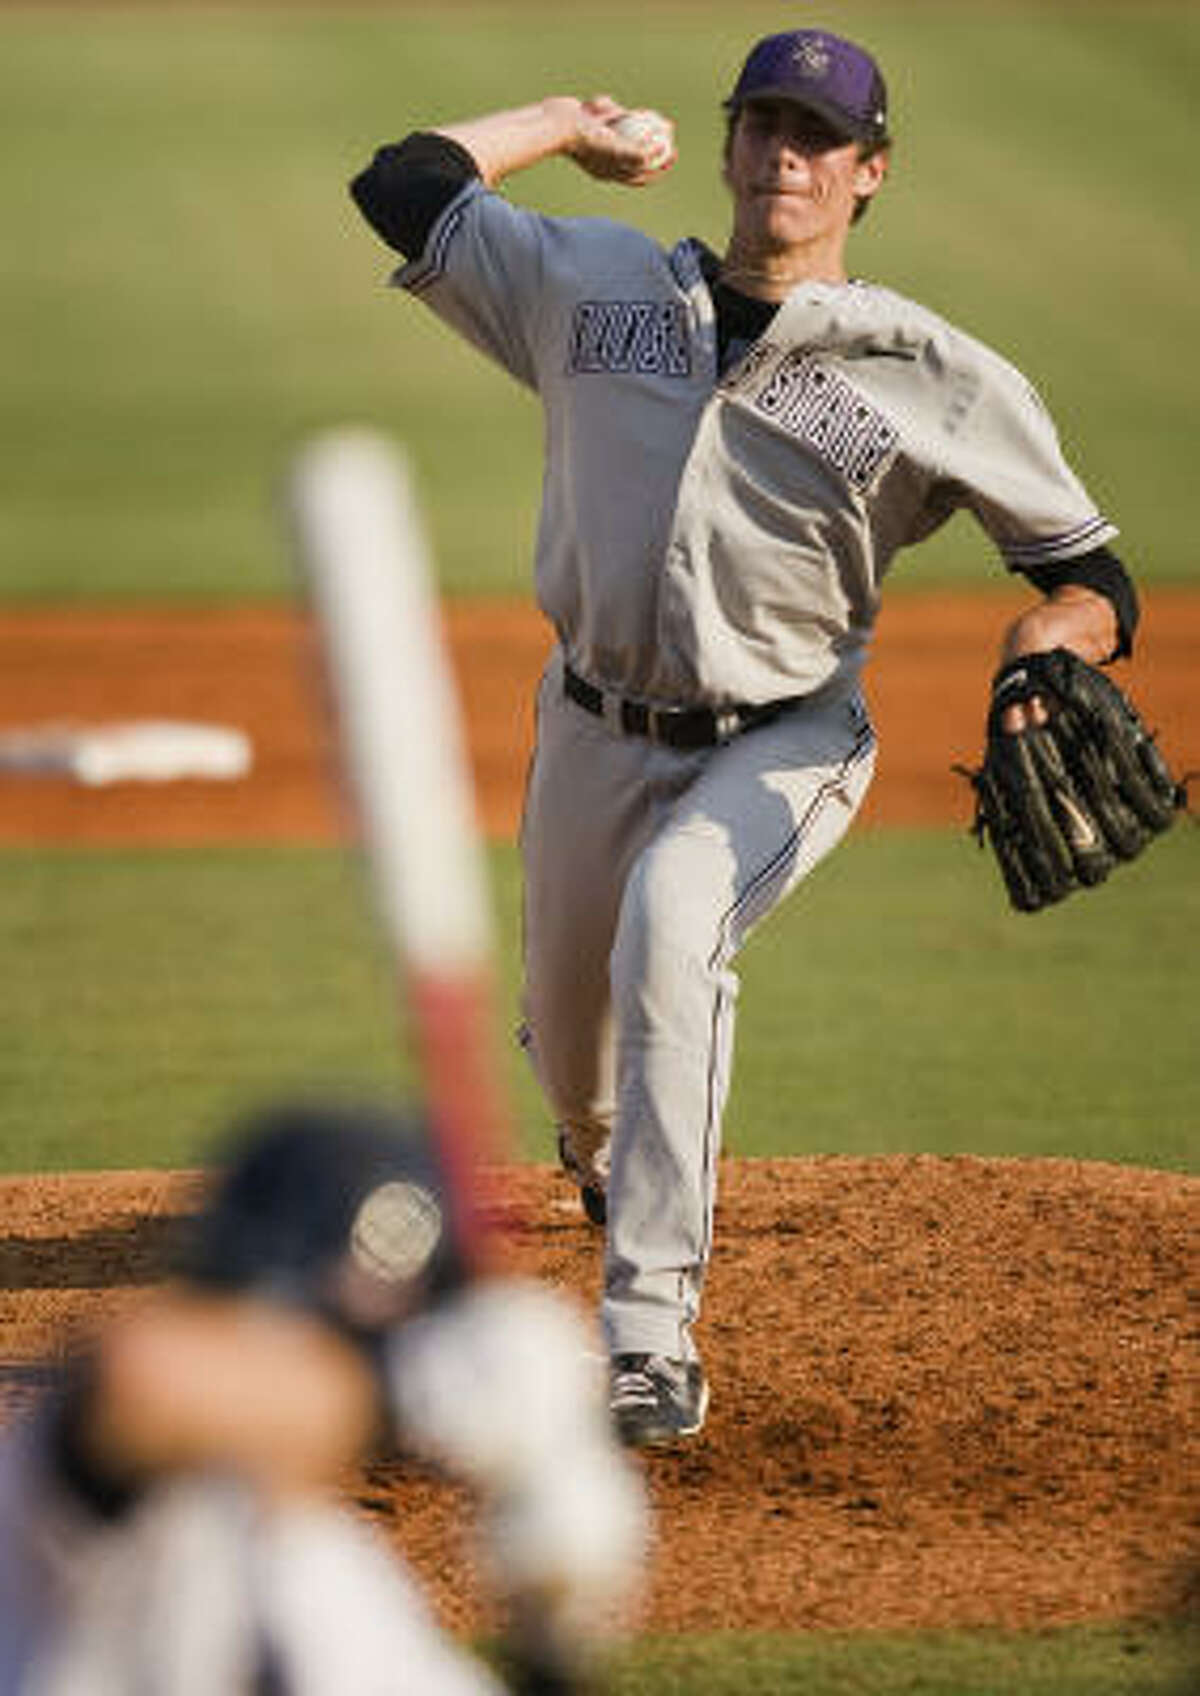 Kansas State pitcher A.J. Morris delivers a pitch during the third inning.